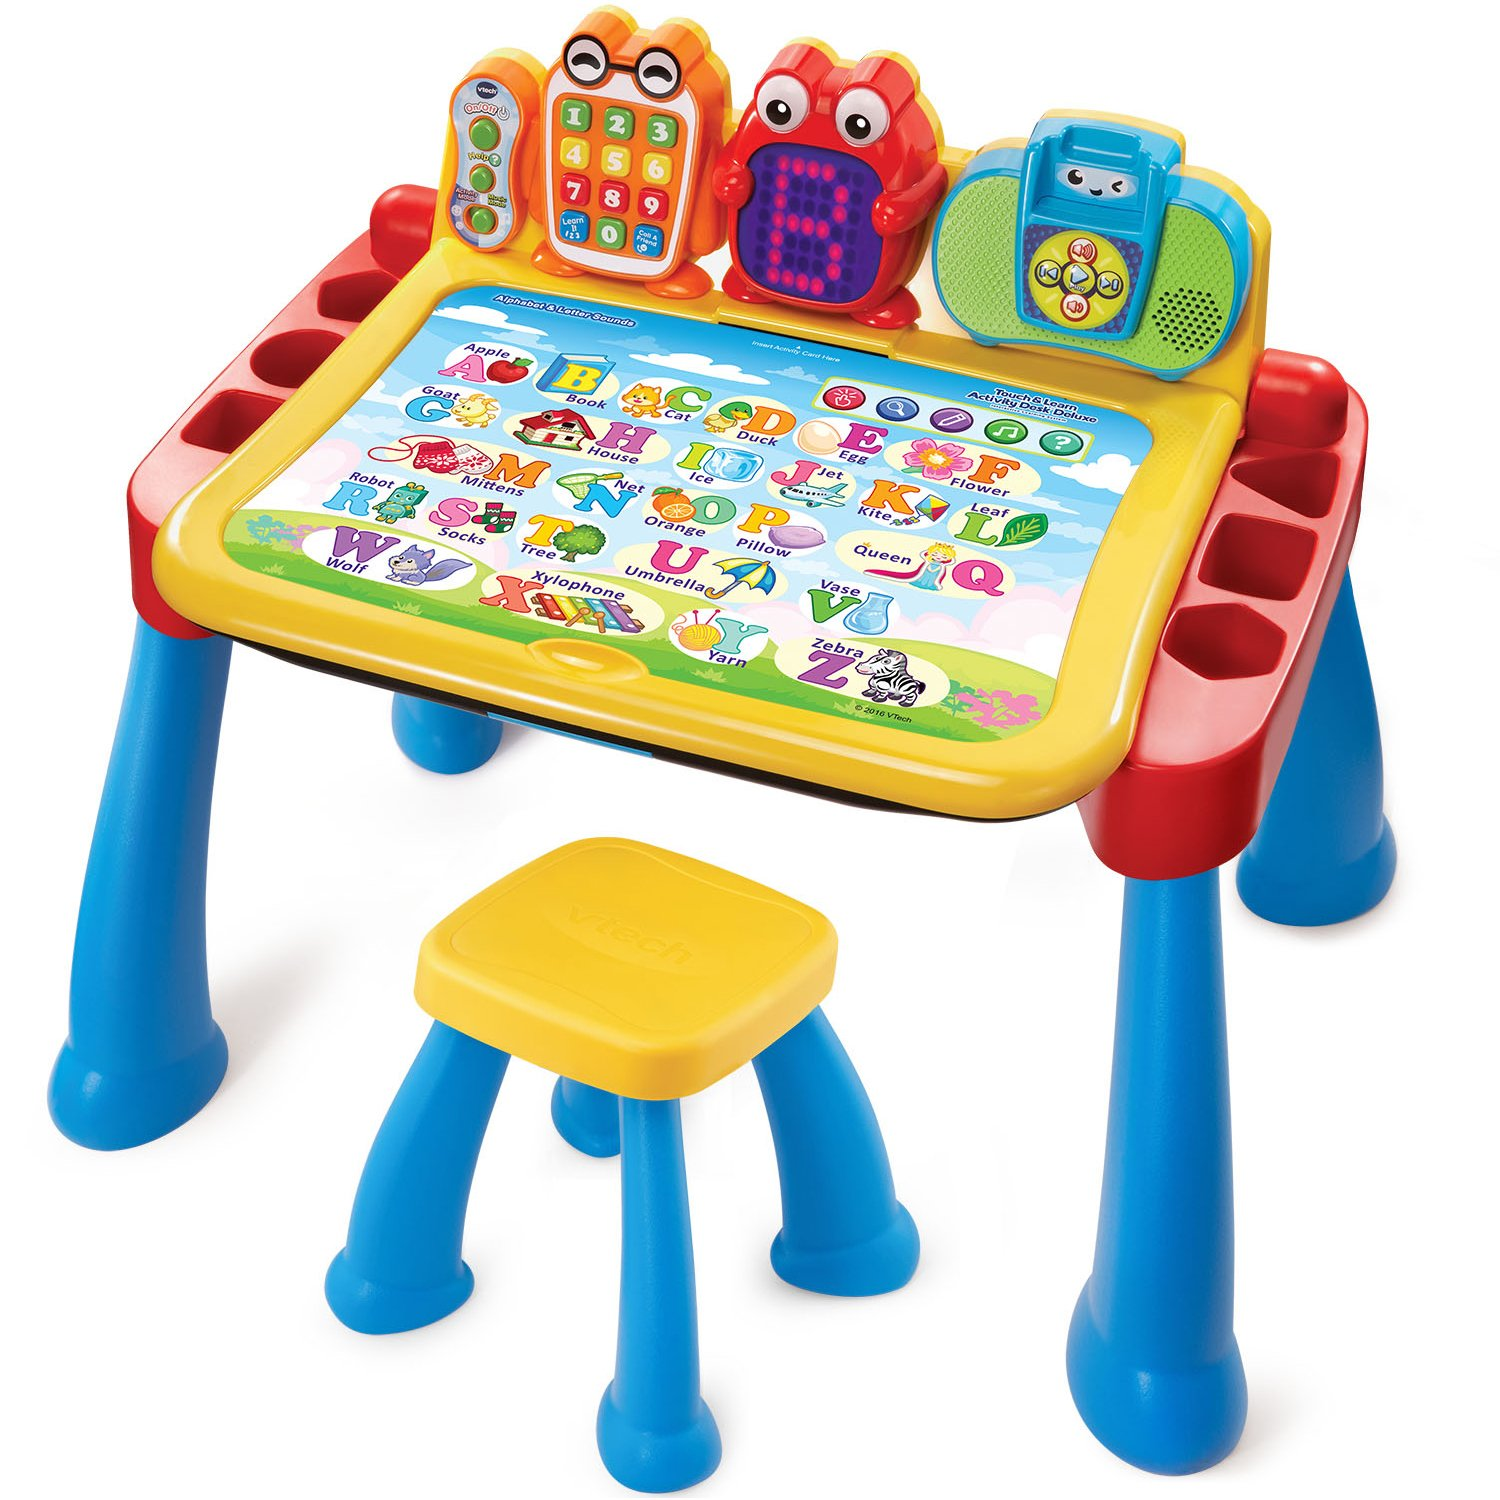 Amazon VTech Touch and Learn Activity Desk Deluxe Toys & Games